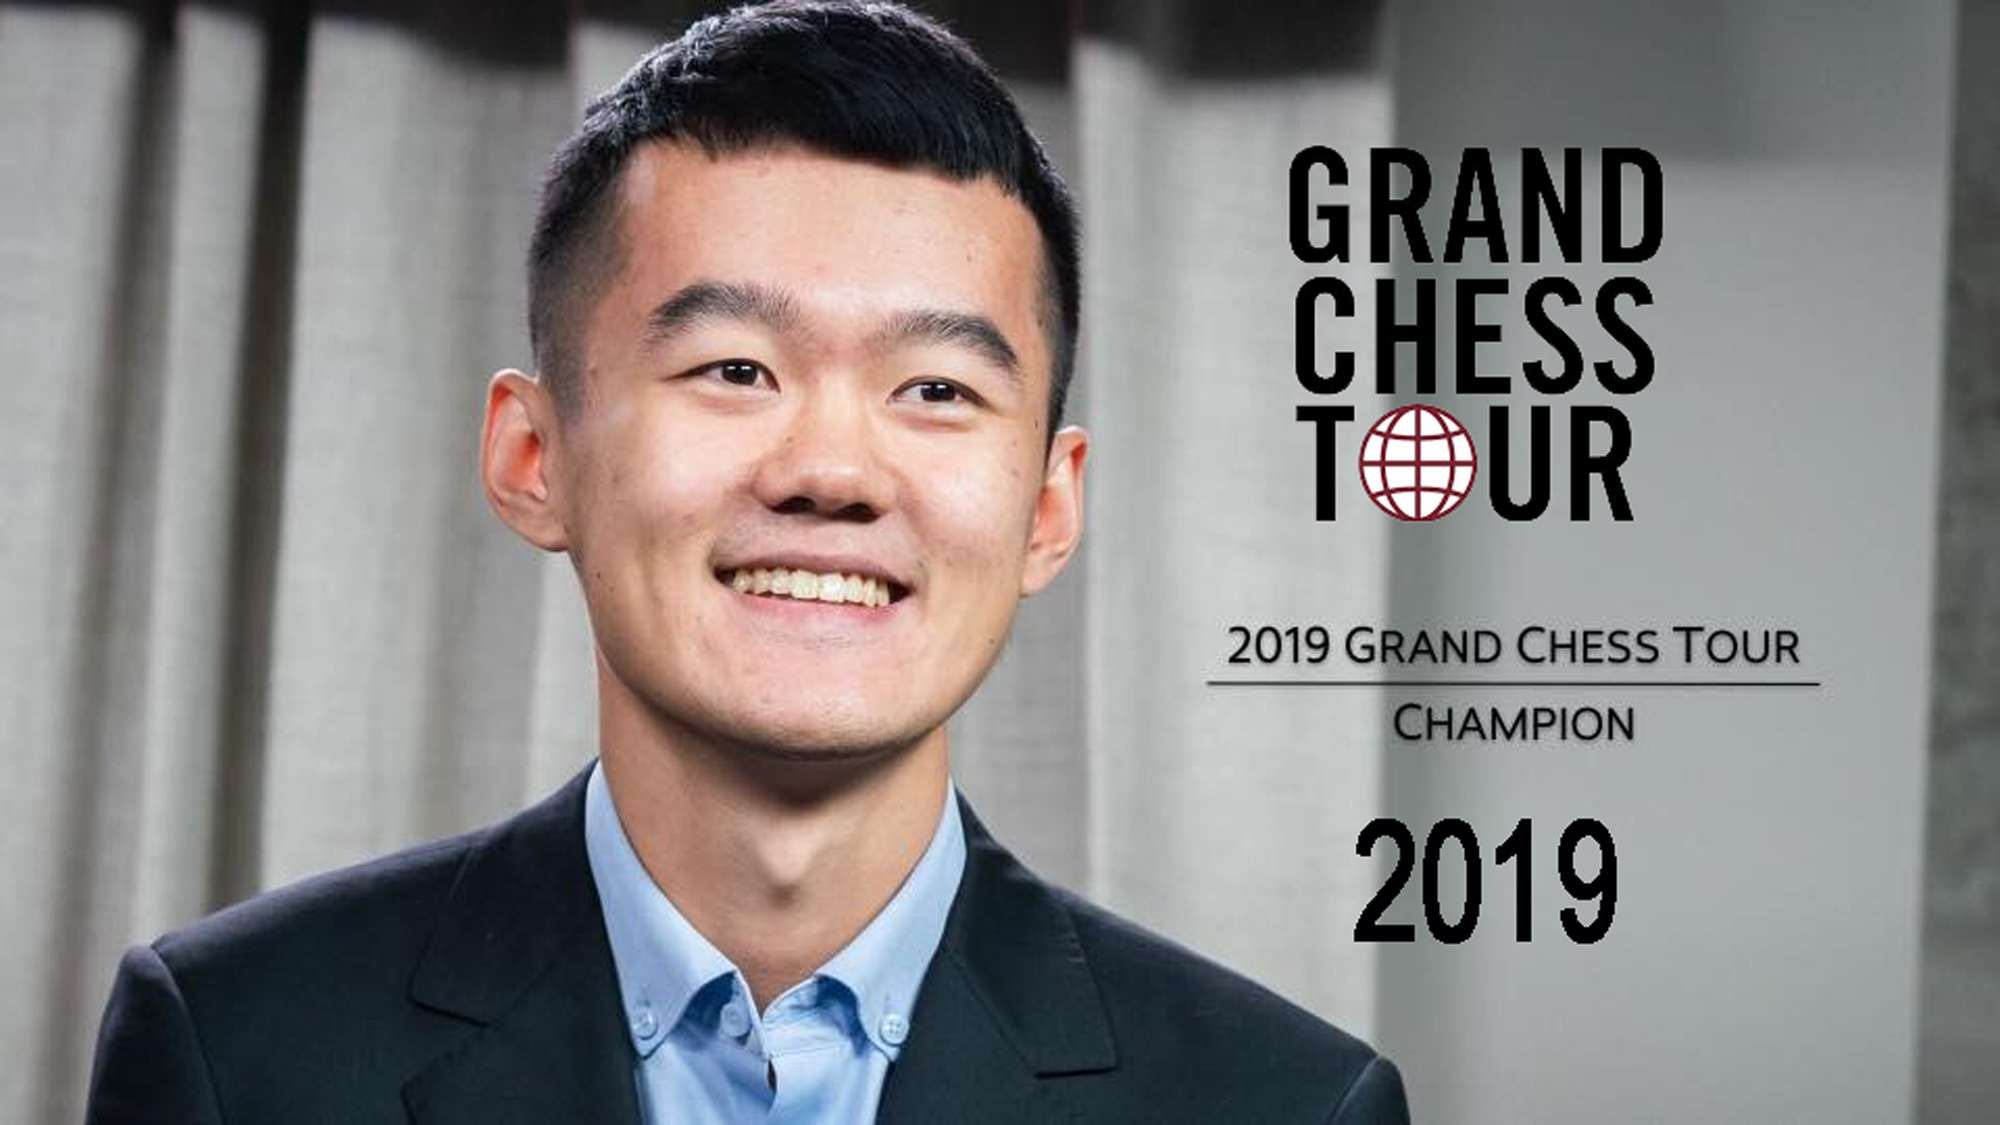 2019 Grand Chess Tour Ding Liren winner